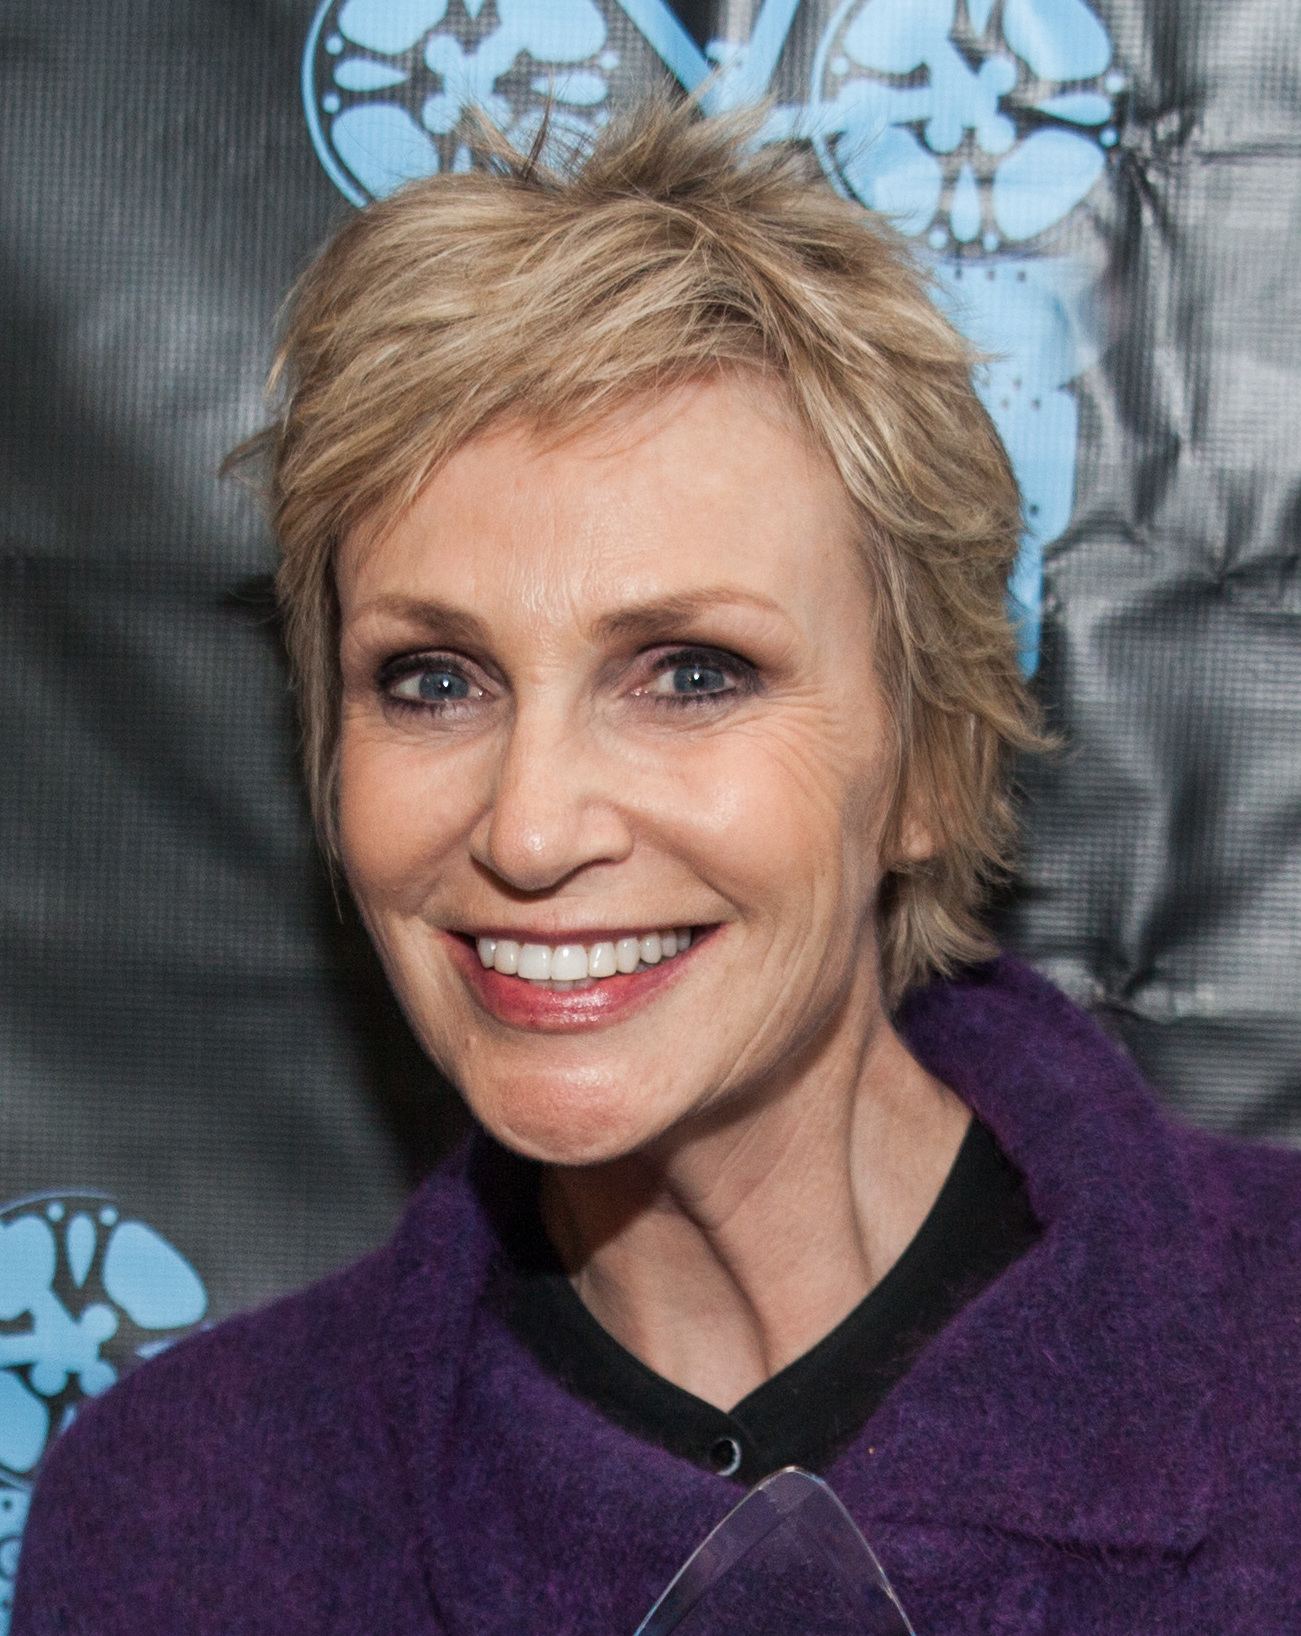 The 58-year old daughter of father Frank Lynch and mother Eileen Lynch Jane Lynch in 2018 photo. Jane Lynch earned a  million dollar salary - leaving the net worth at 10 million in 2018